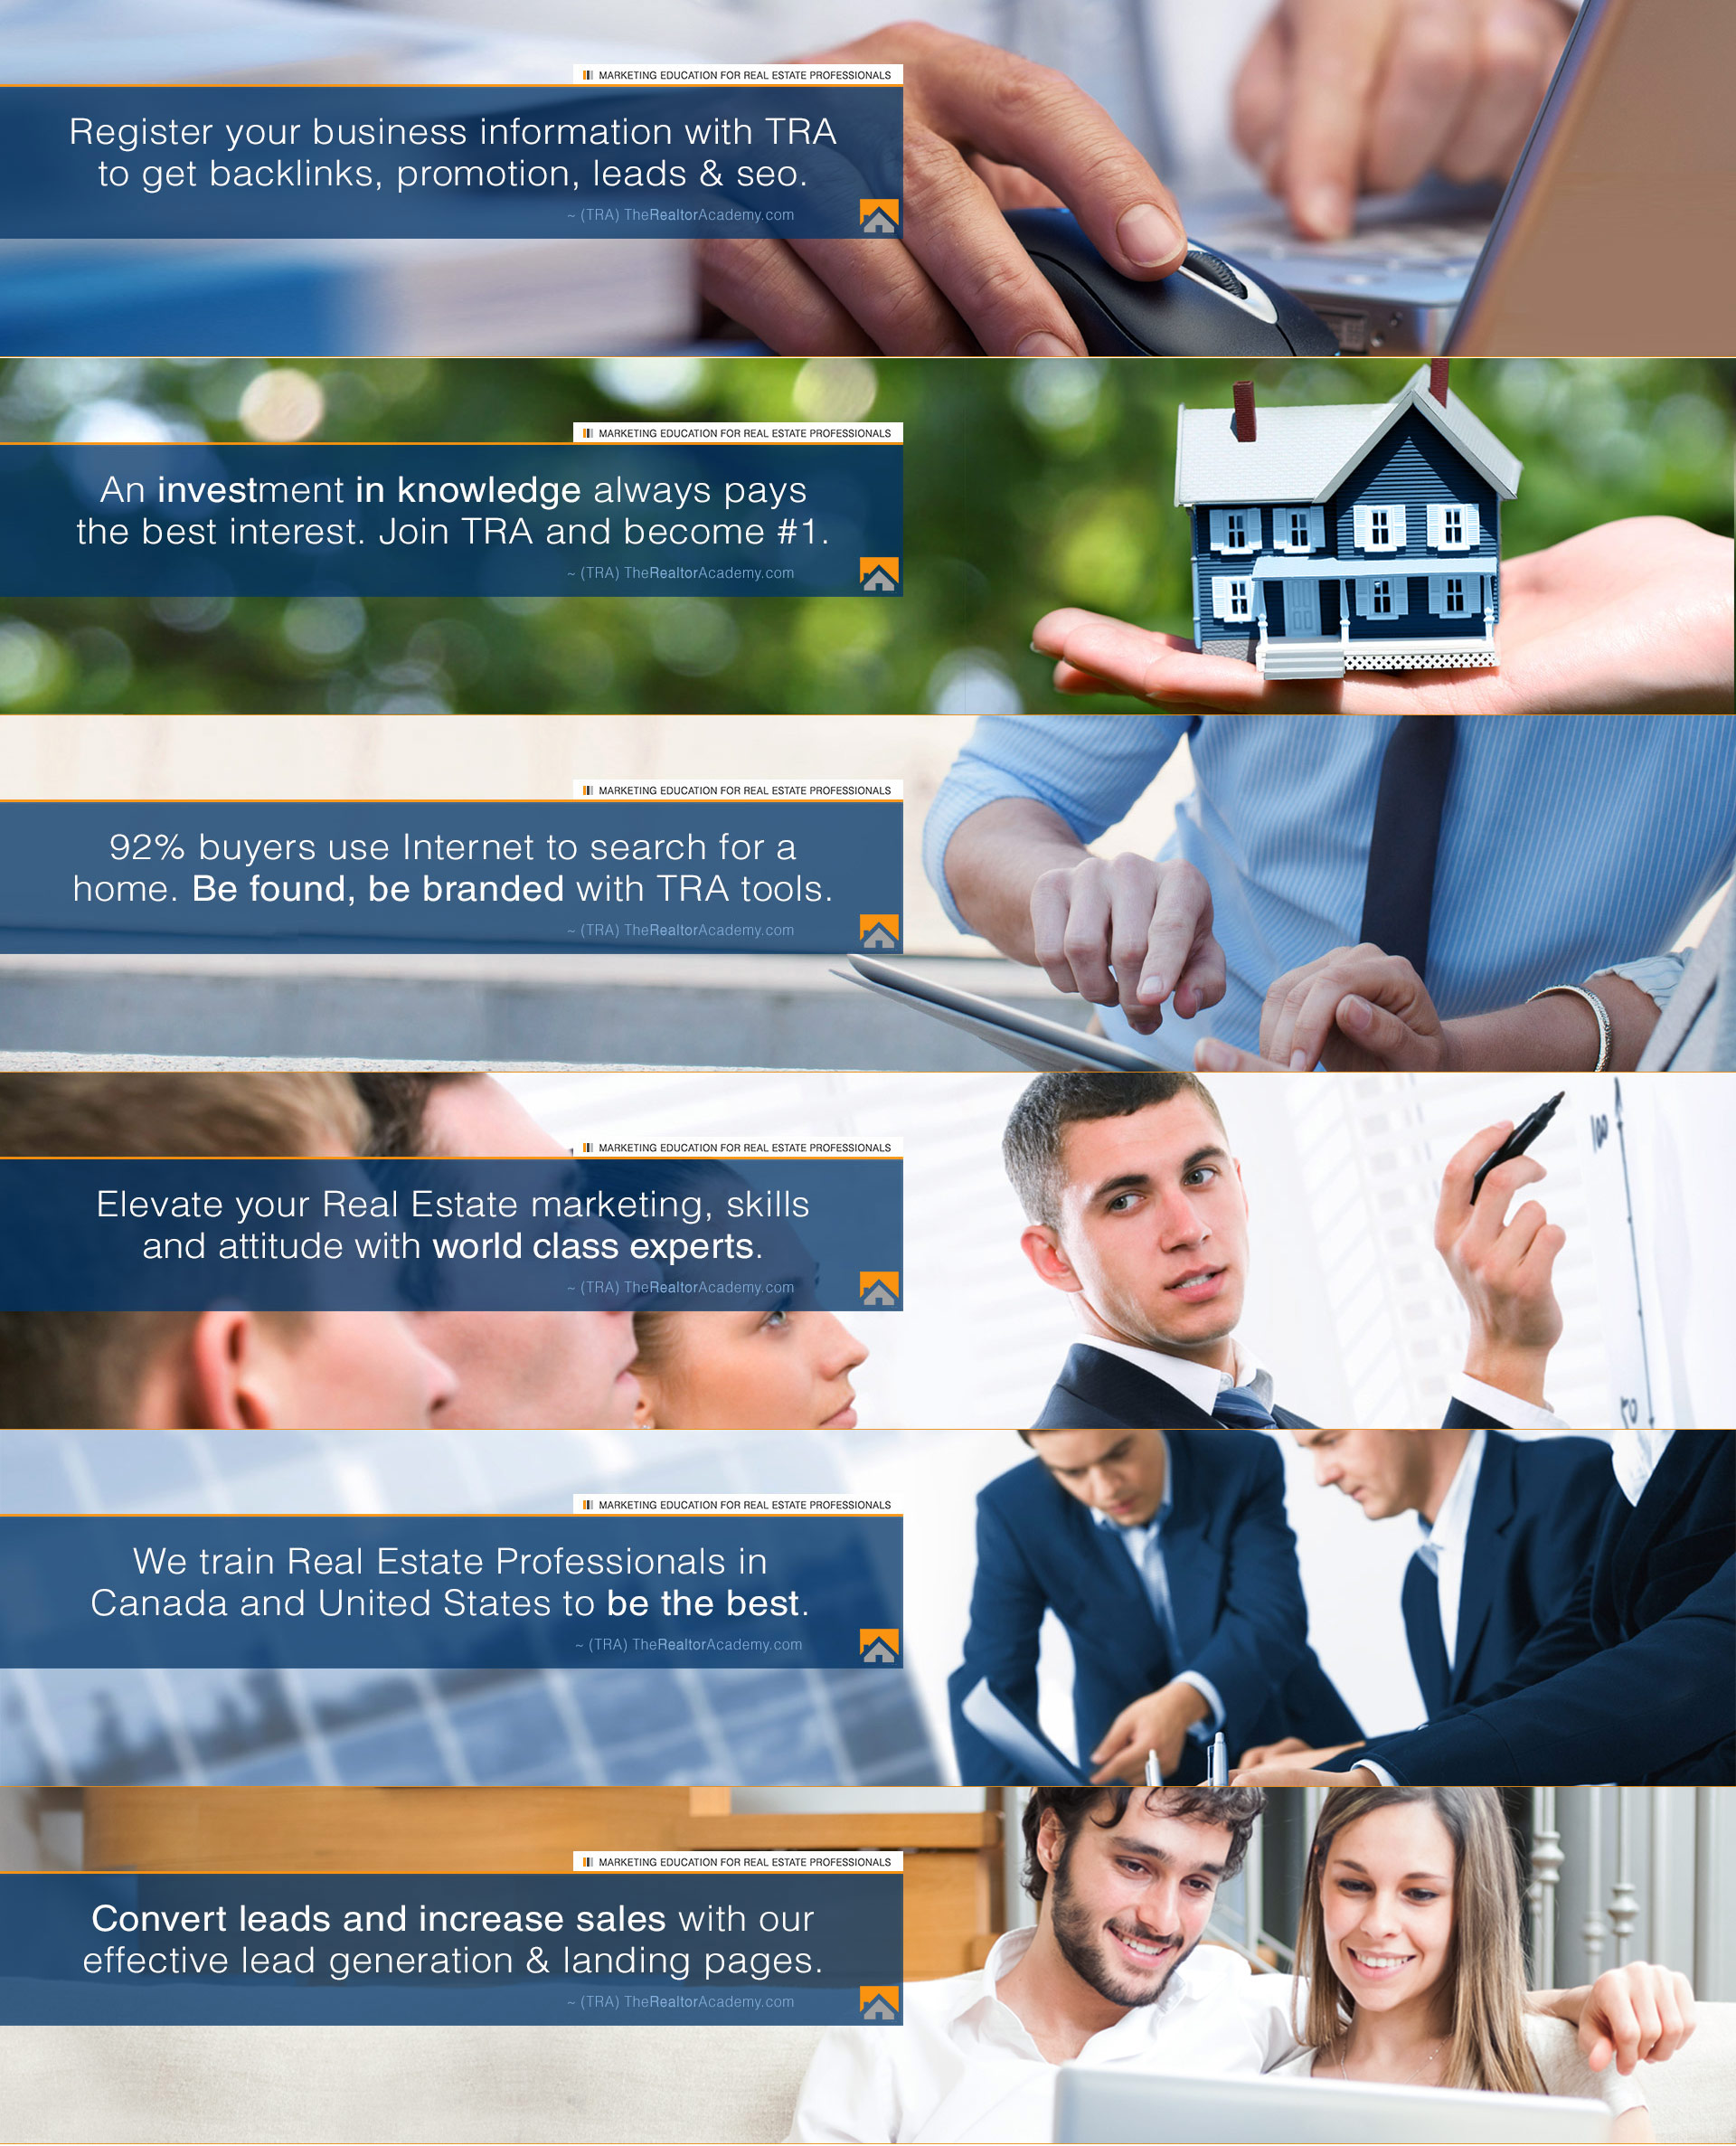 the-logic-box-portfolio-showcase-work-get-started-web-banner-campaign-for-the-realtor-academy